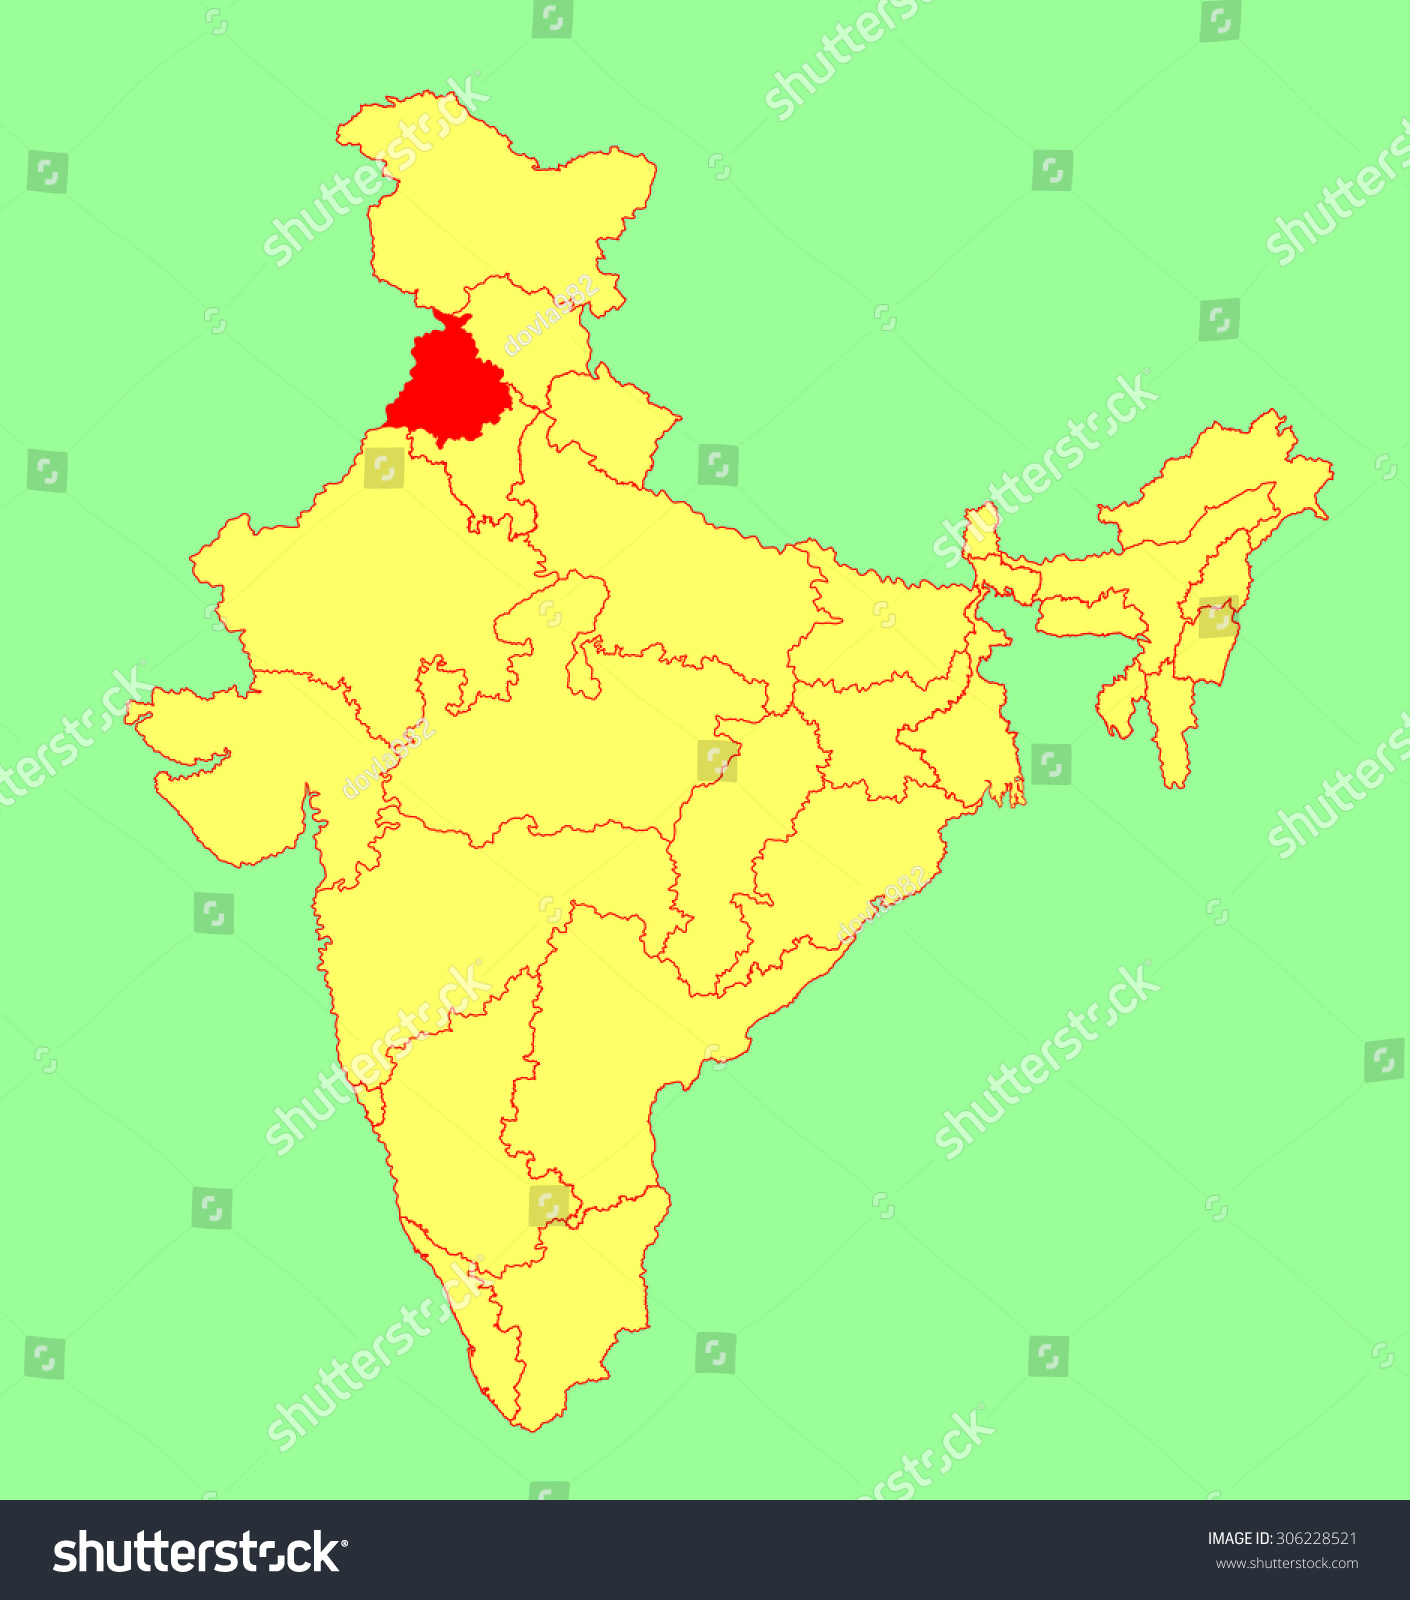 Punjab state india vector map silhouette stock vector 306228521 punjab state india vector map silhouette illustration isolated on india map editable blank buycottarizona Gallery